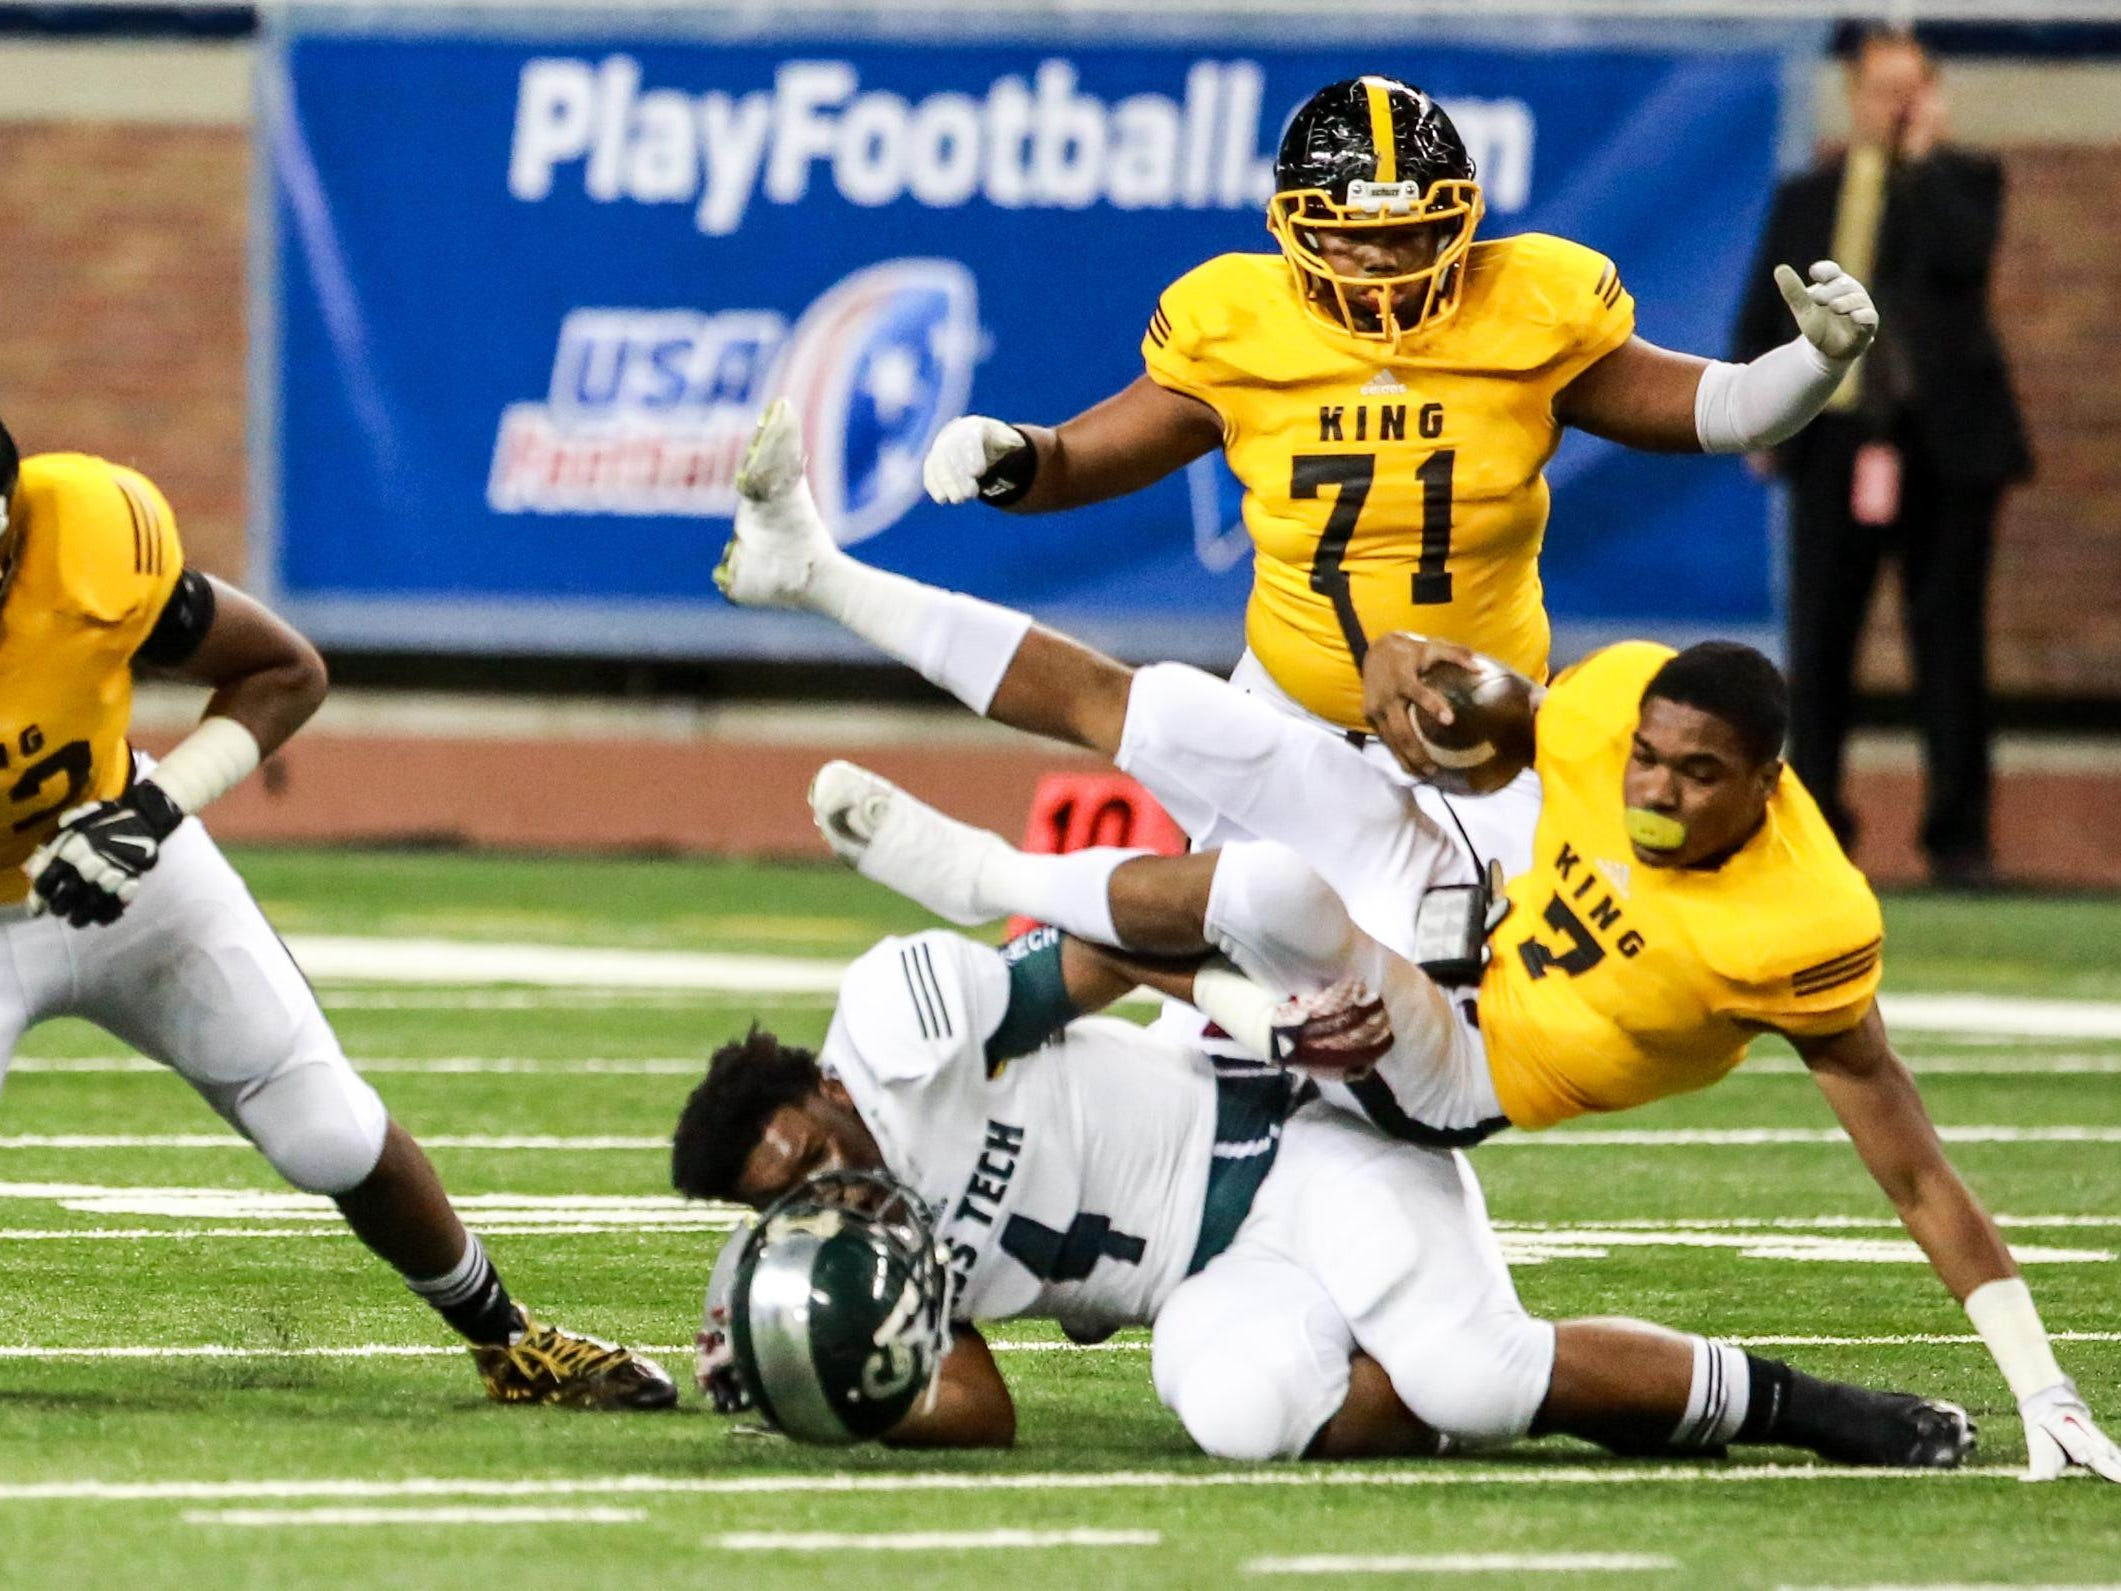 Detroit King QB Armani Posey is tackled by Detroit Cass Tech's Taron Young, who loses his helmet in the process, in the Division I title game.